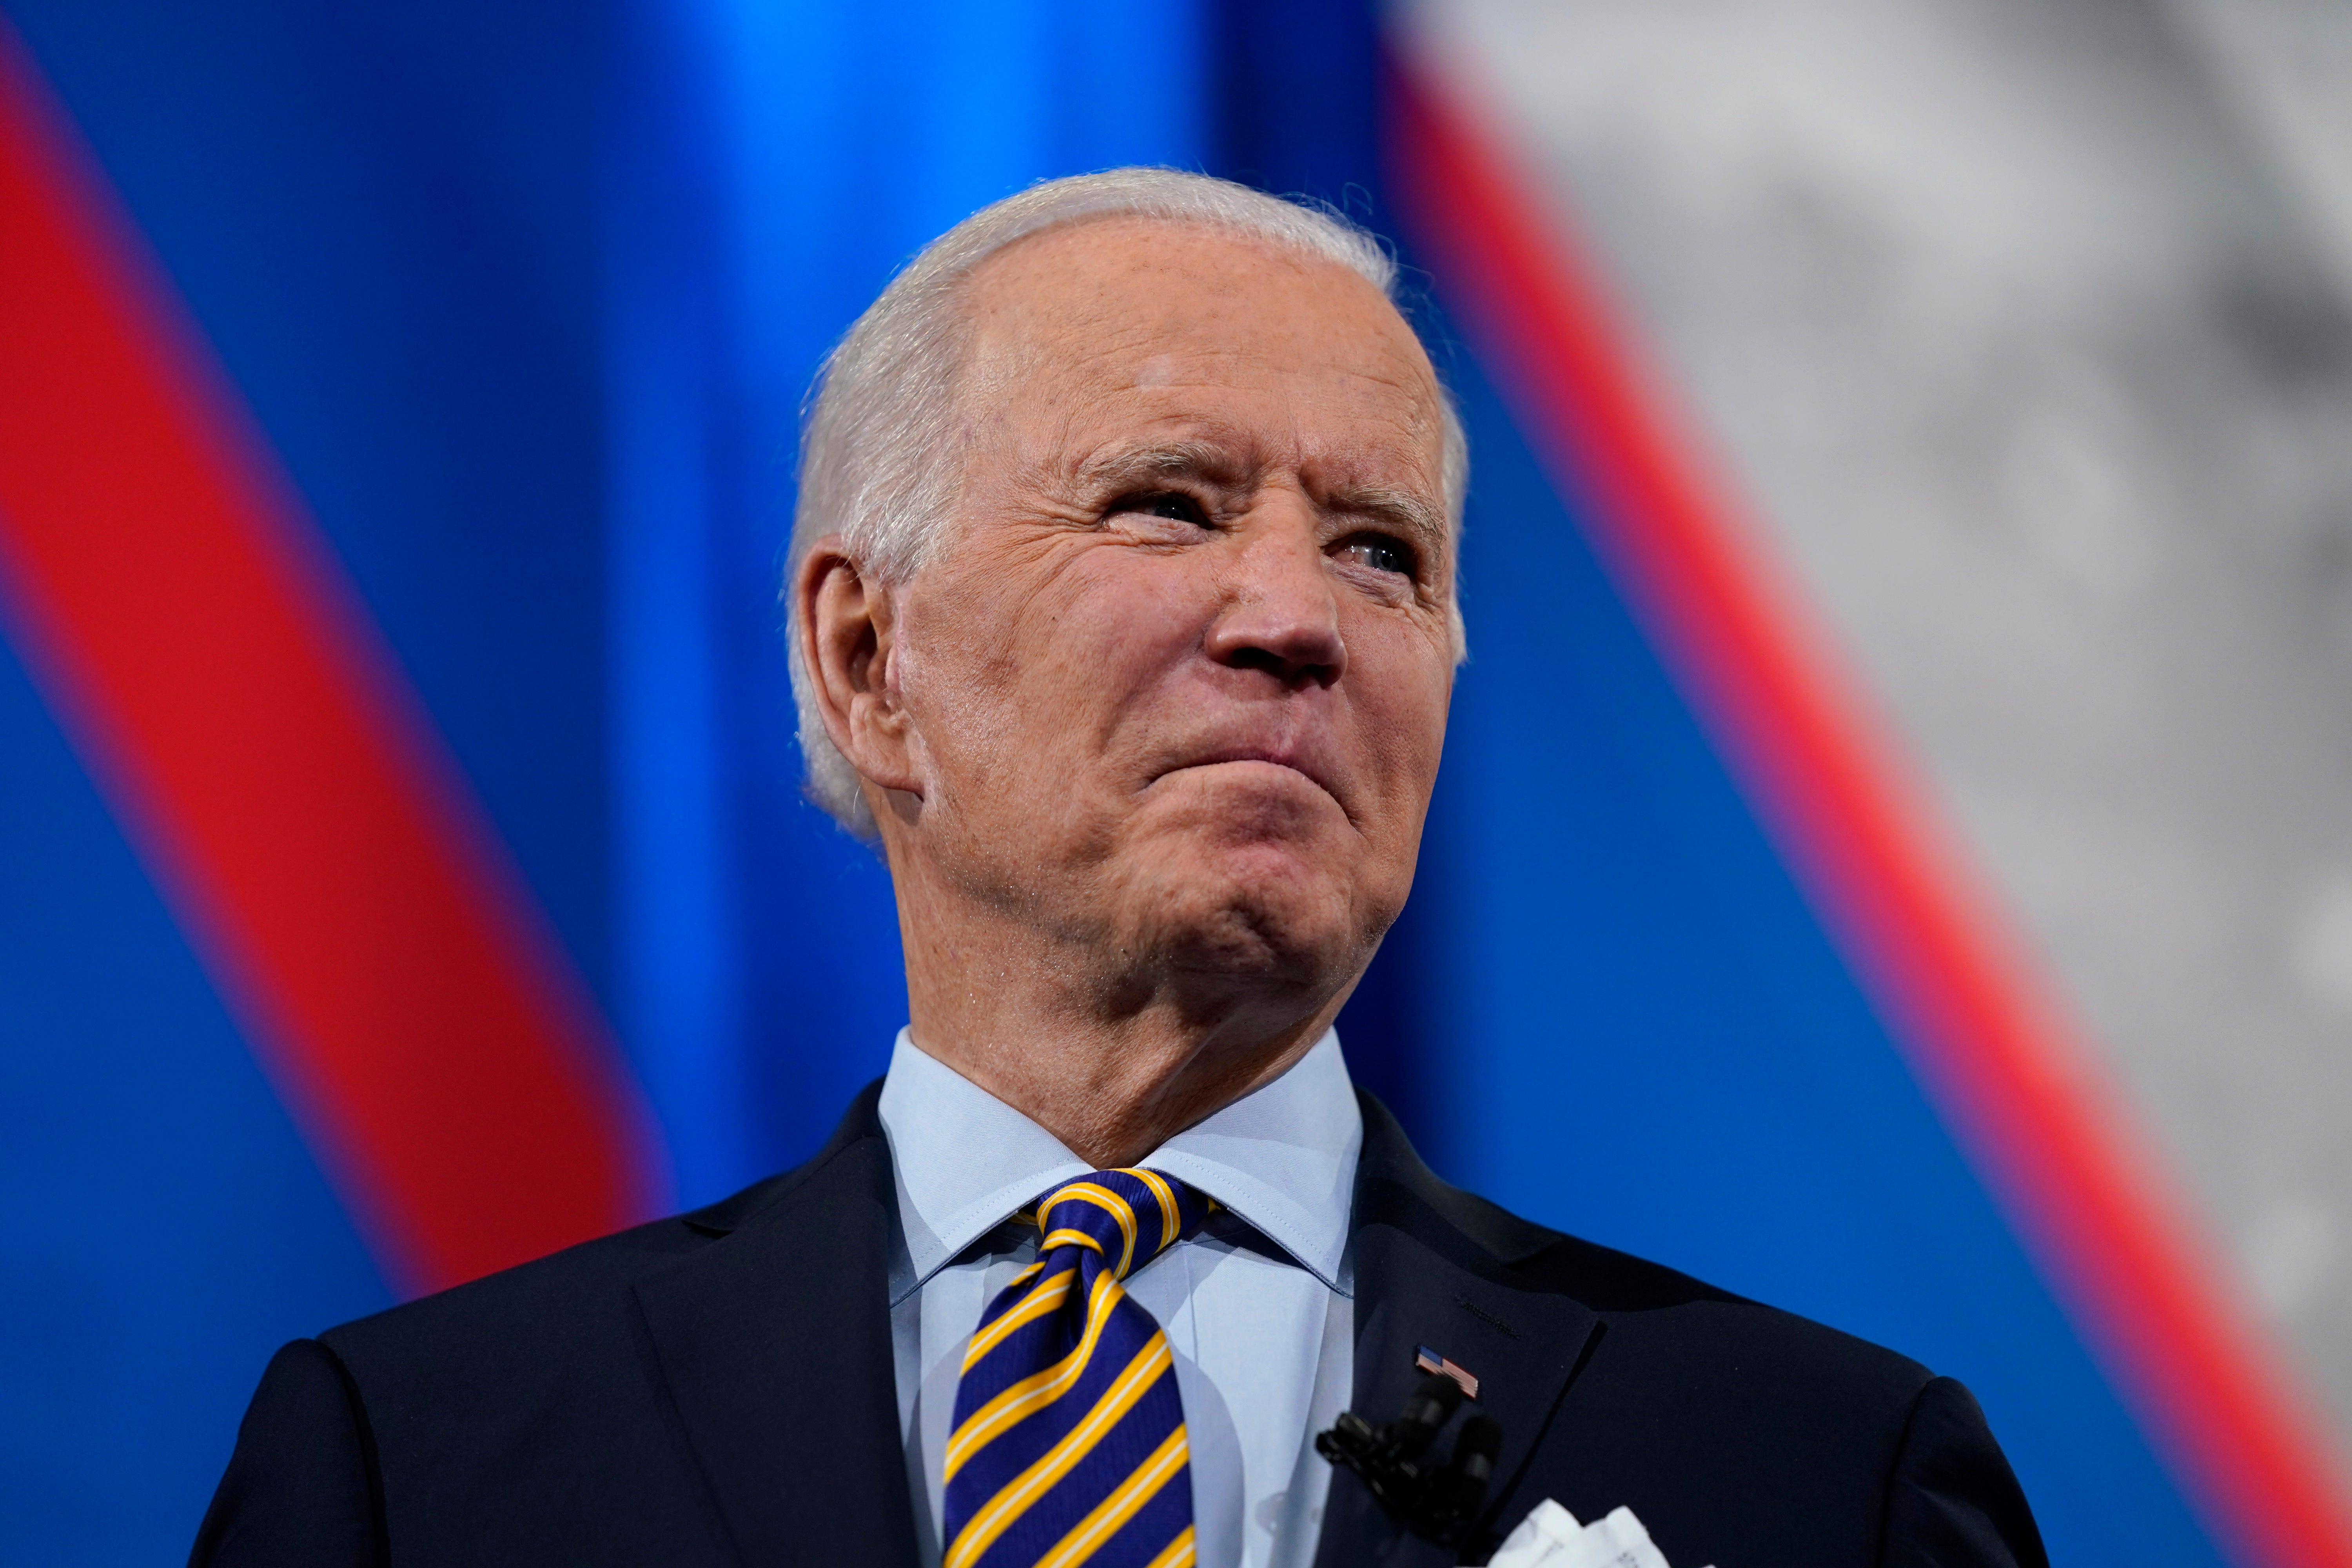 Five days a week : Biden recommits to his goal for reopening K-8 schools